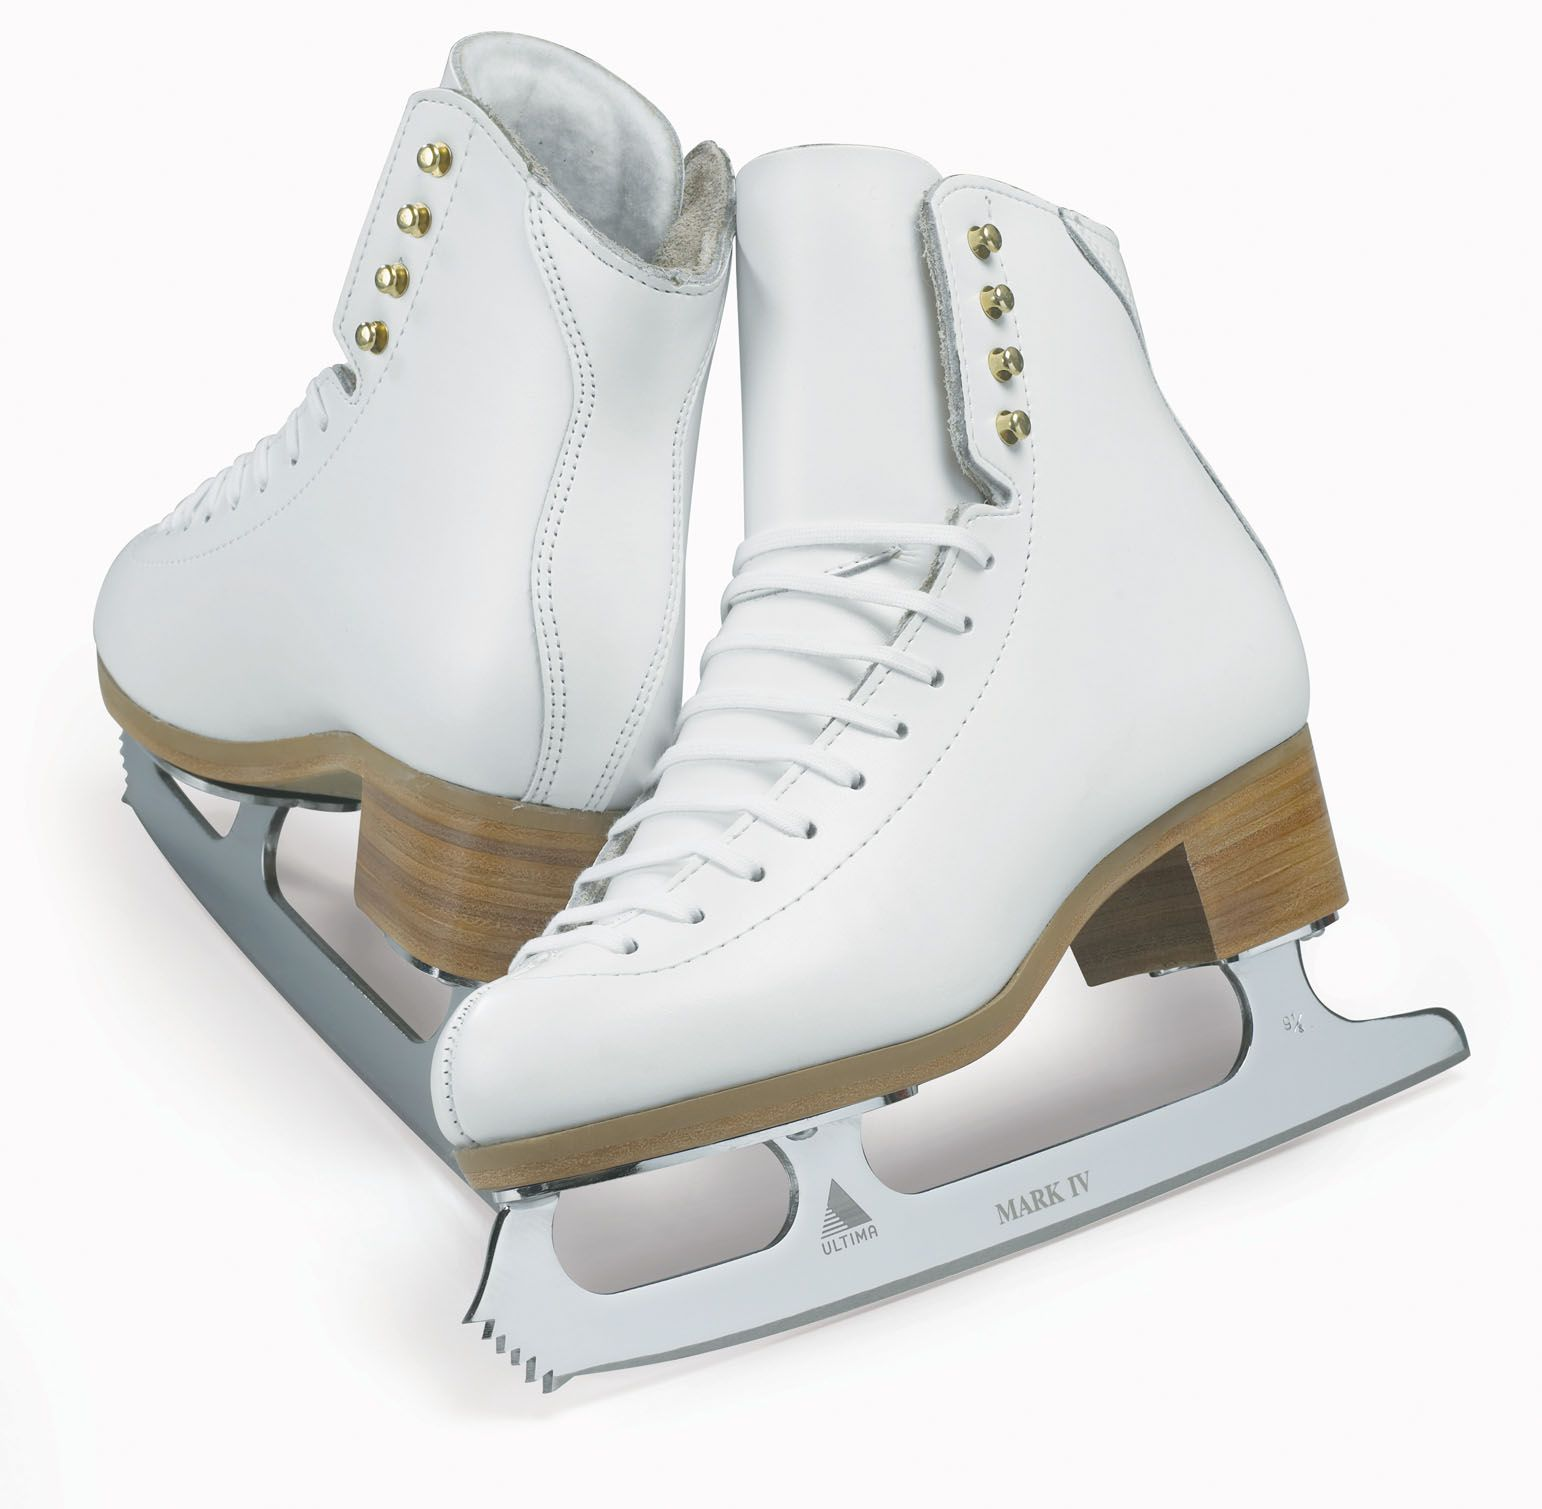 purchasing your first pair of ice skates